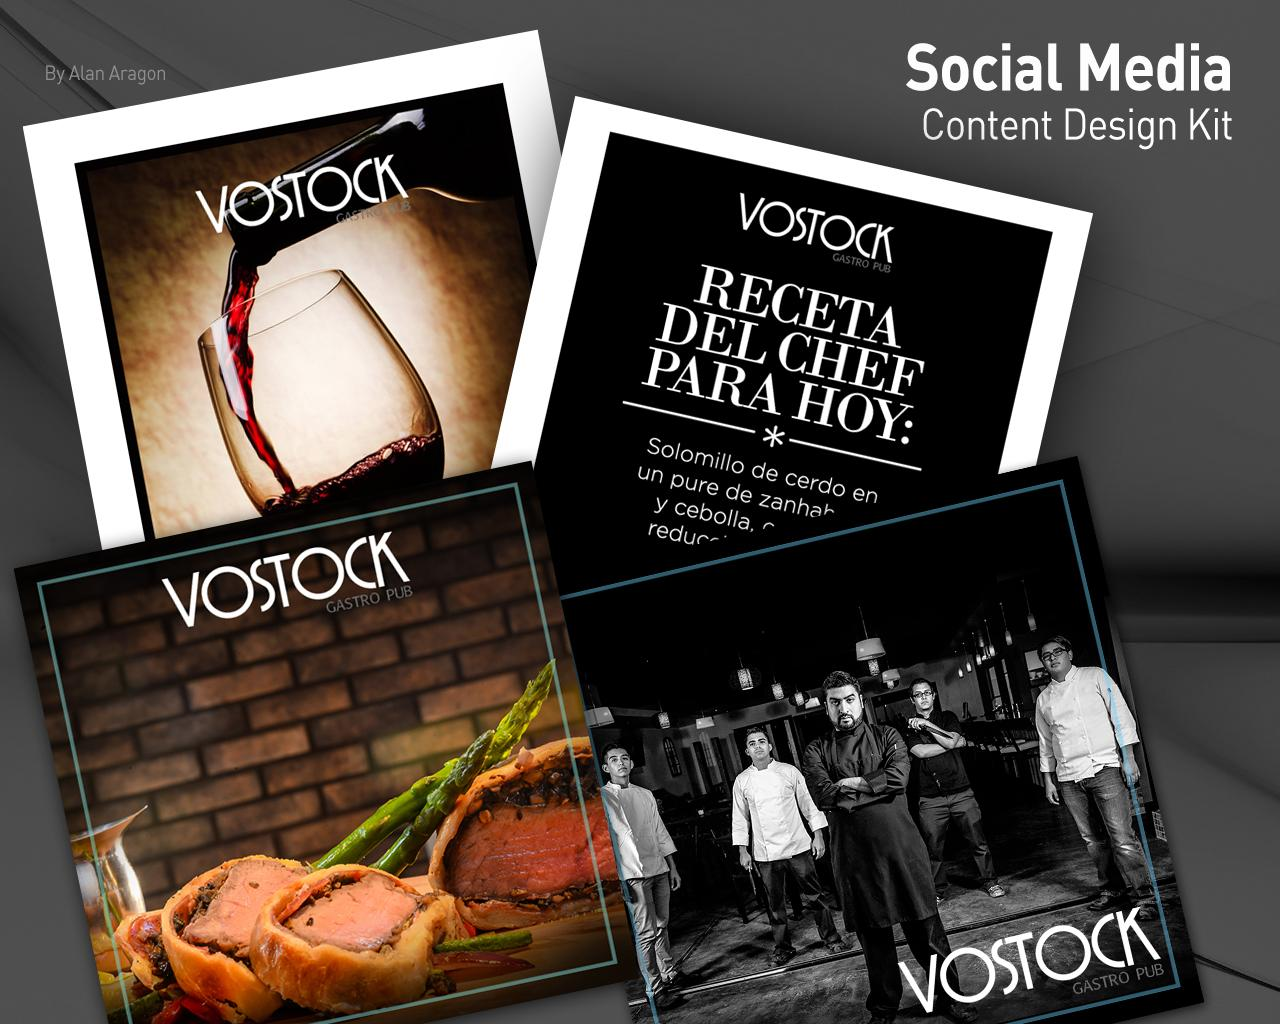 Social Media Designs by alandsgnr - 67080